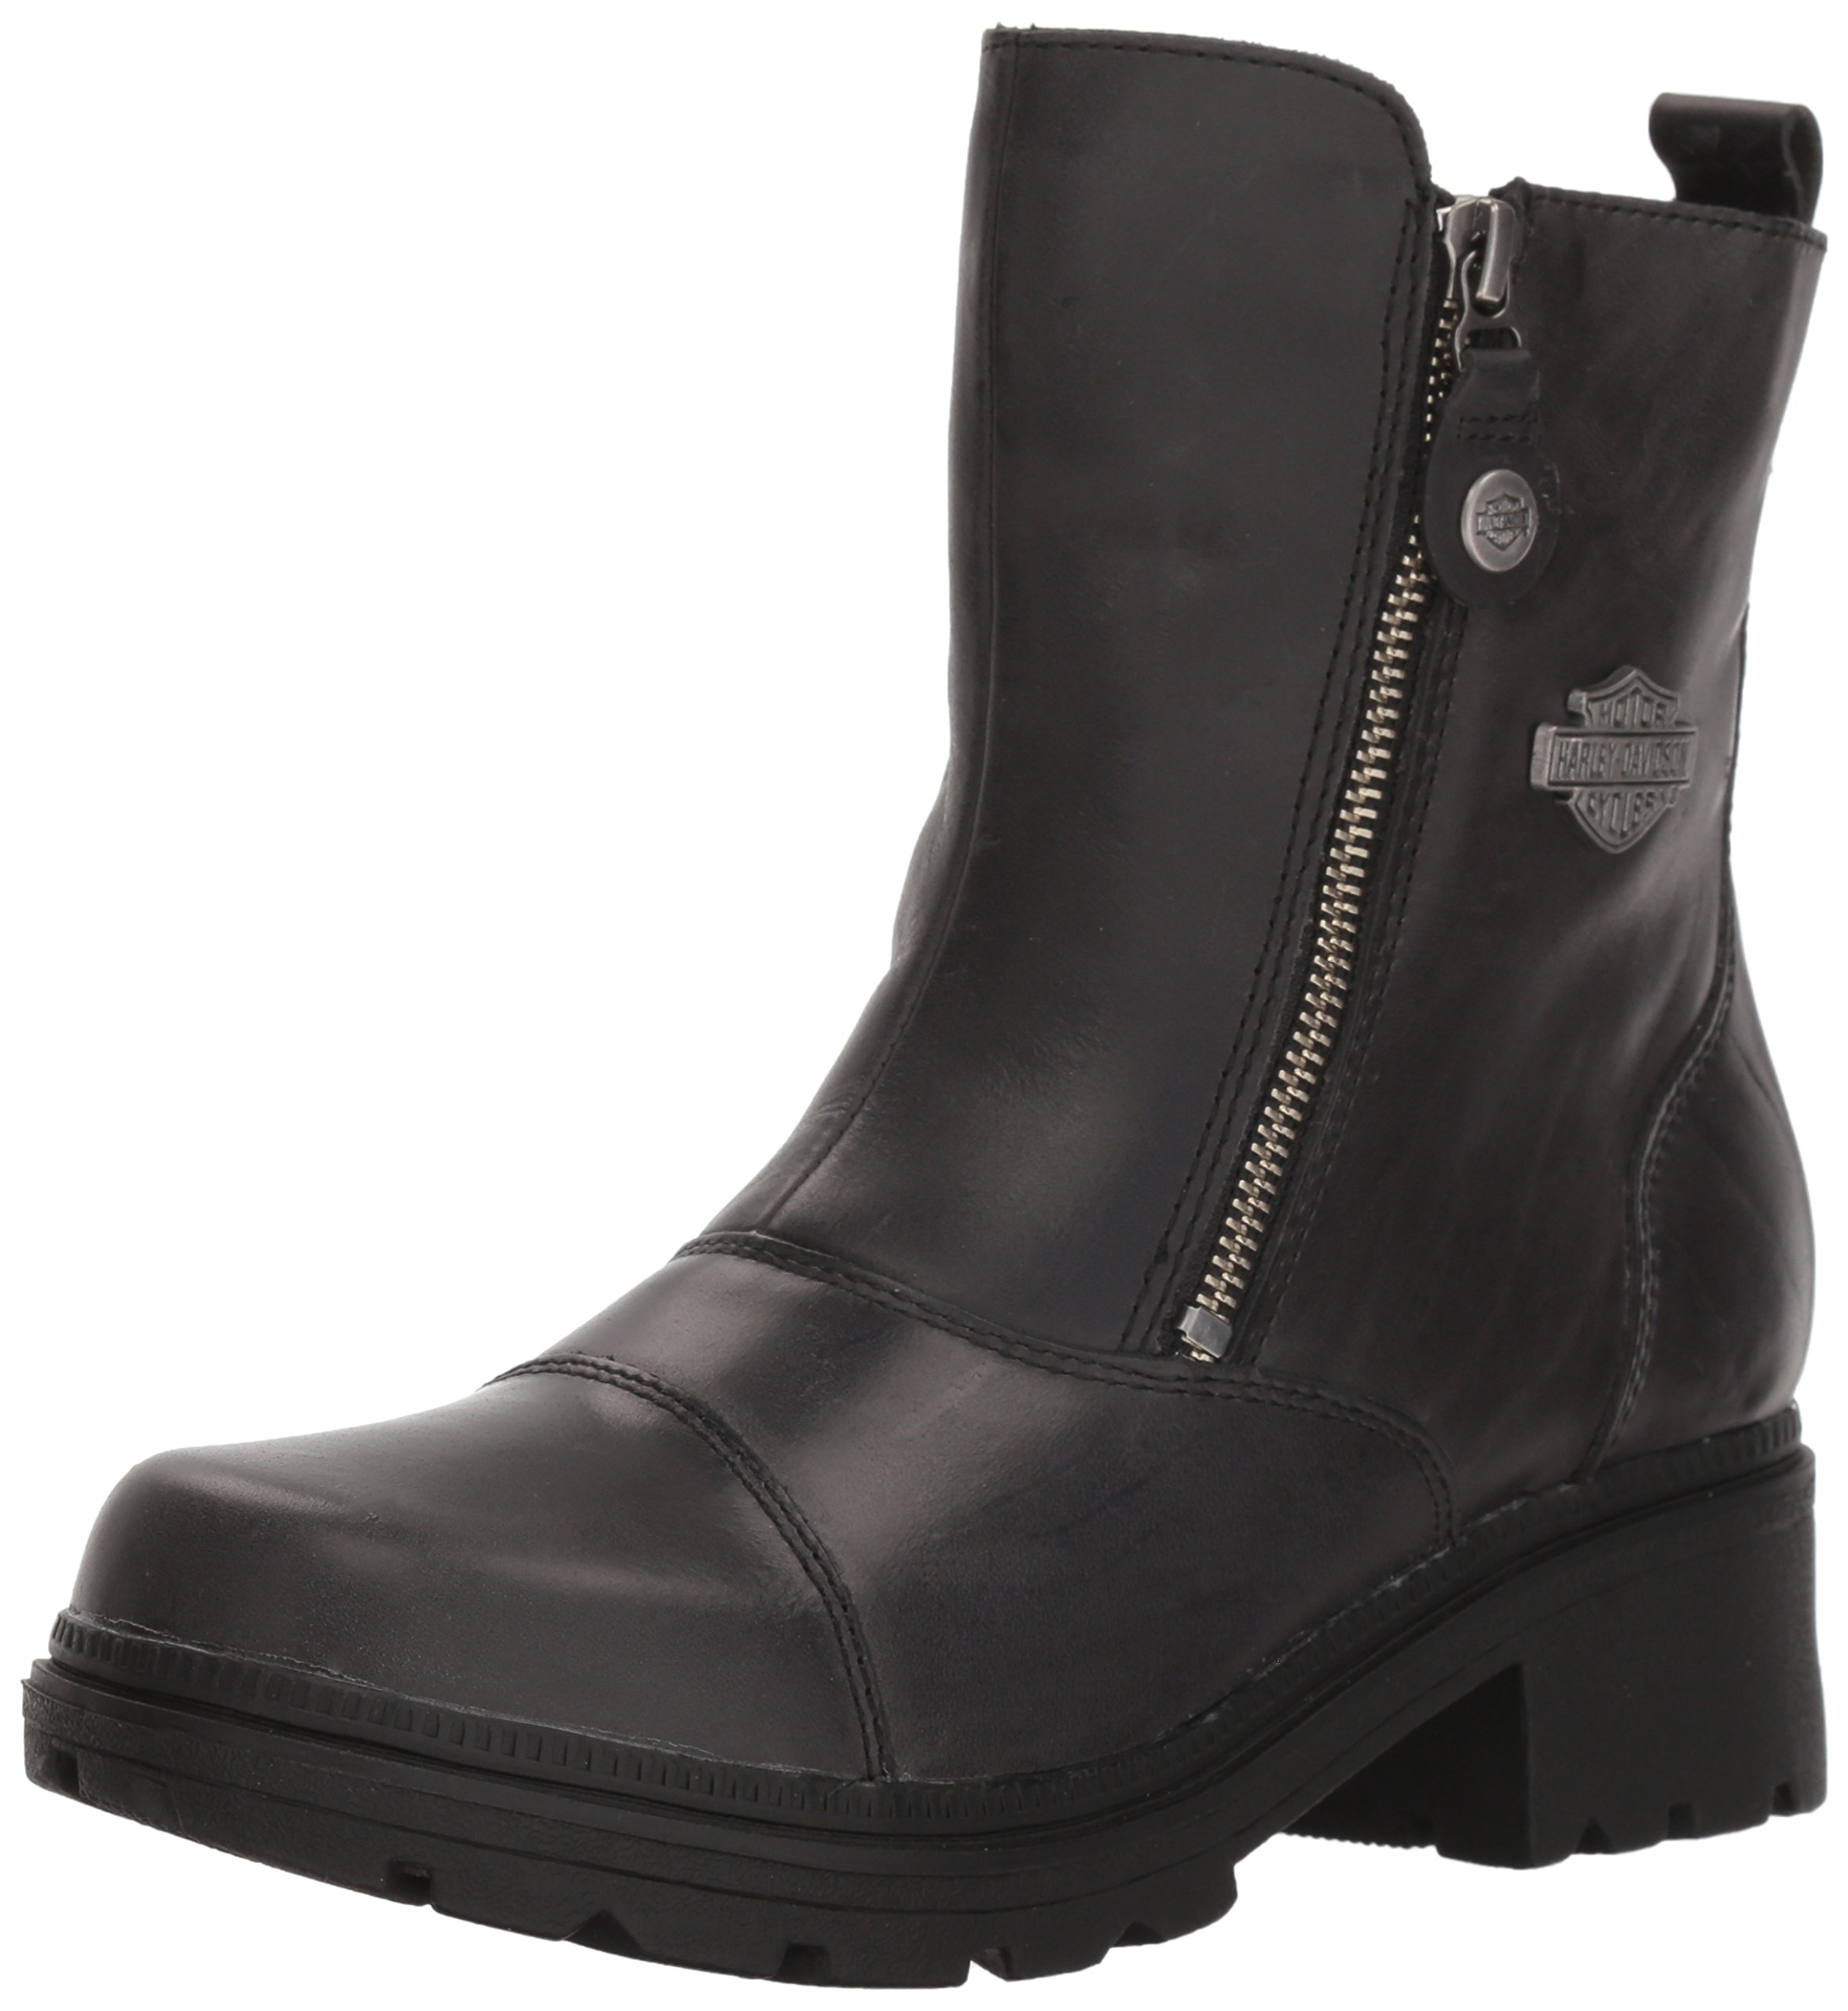 Harley-Davidson Women's Amherst Motorcycle Boot, Black, 6 Medium US